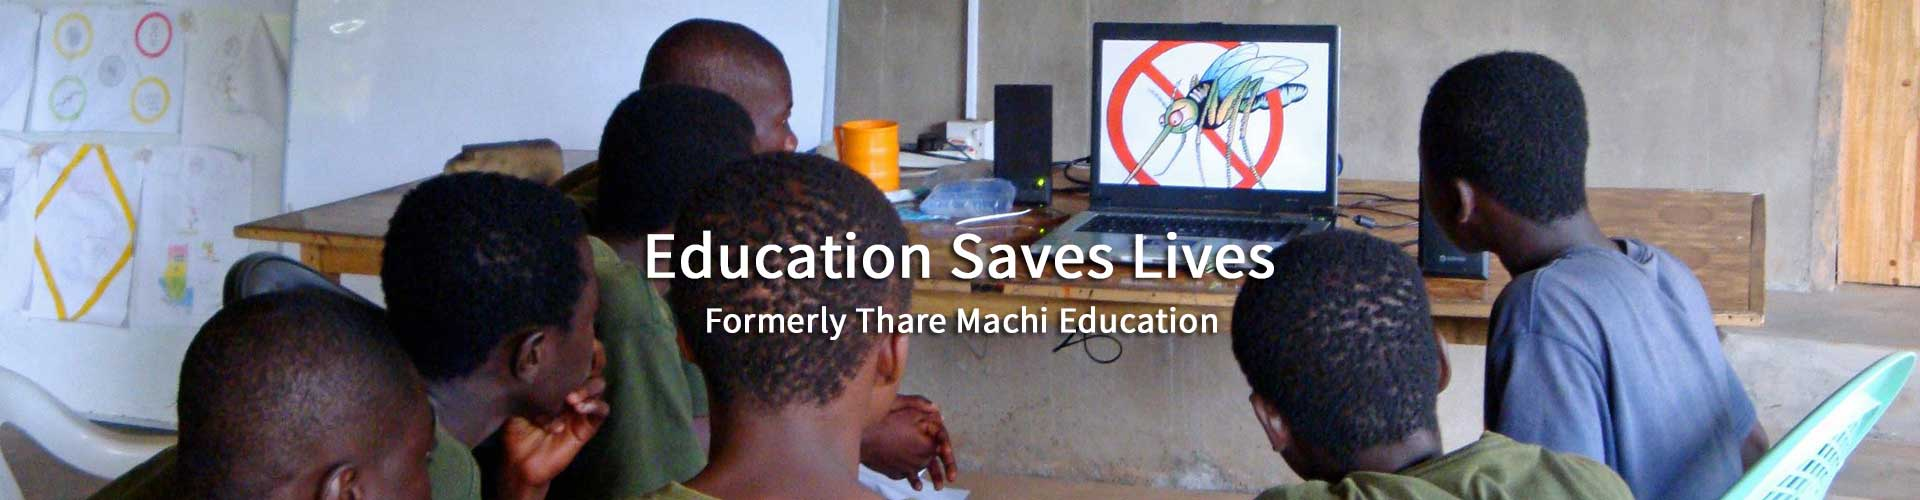 Education Saves Lives - Formerly Thare Machi Education